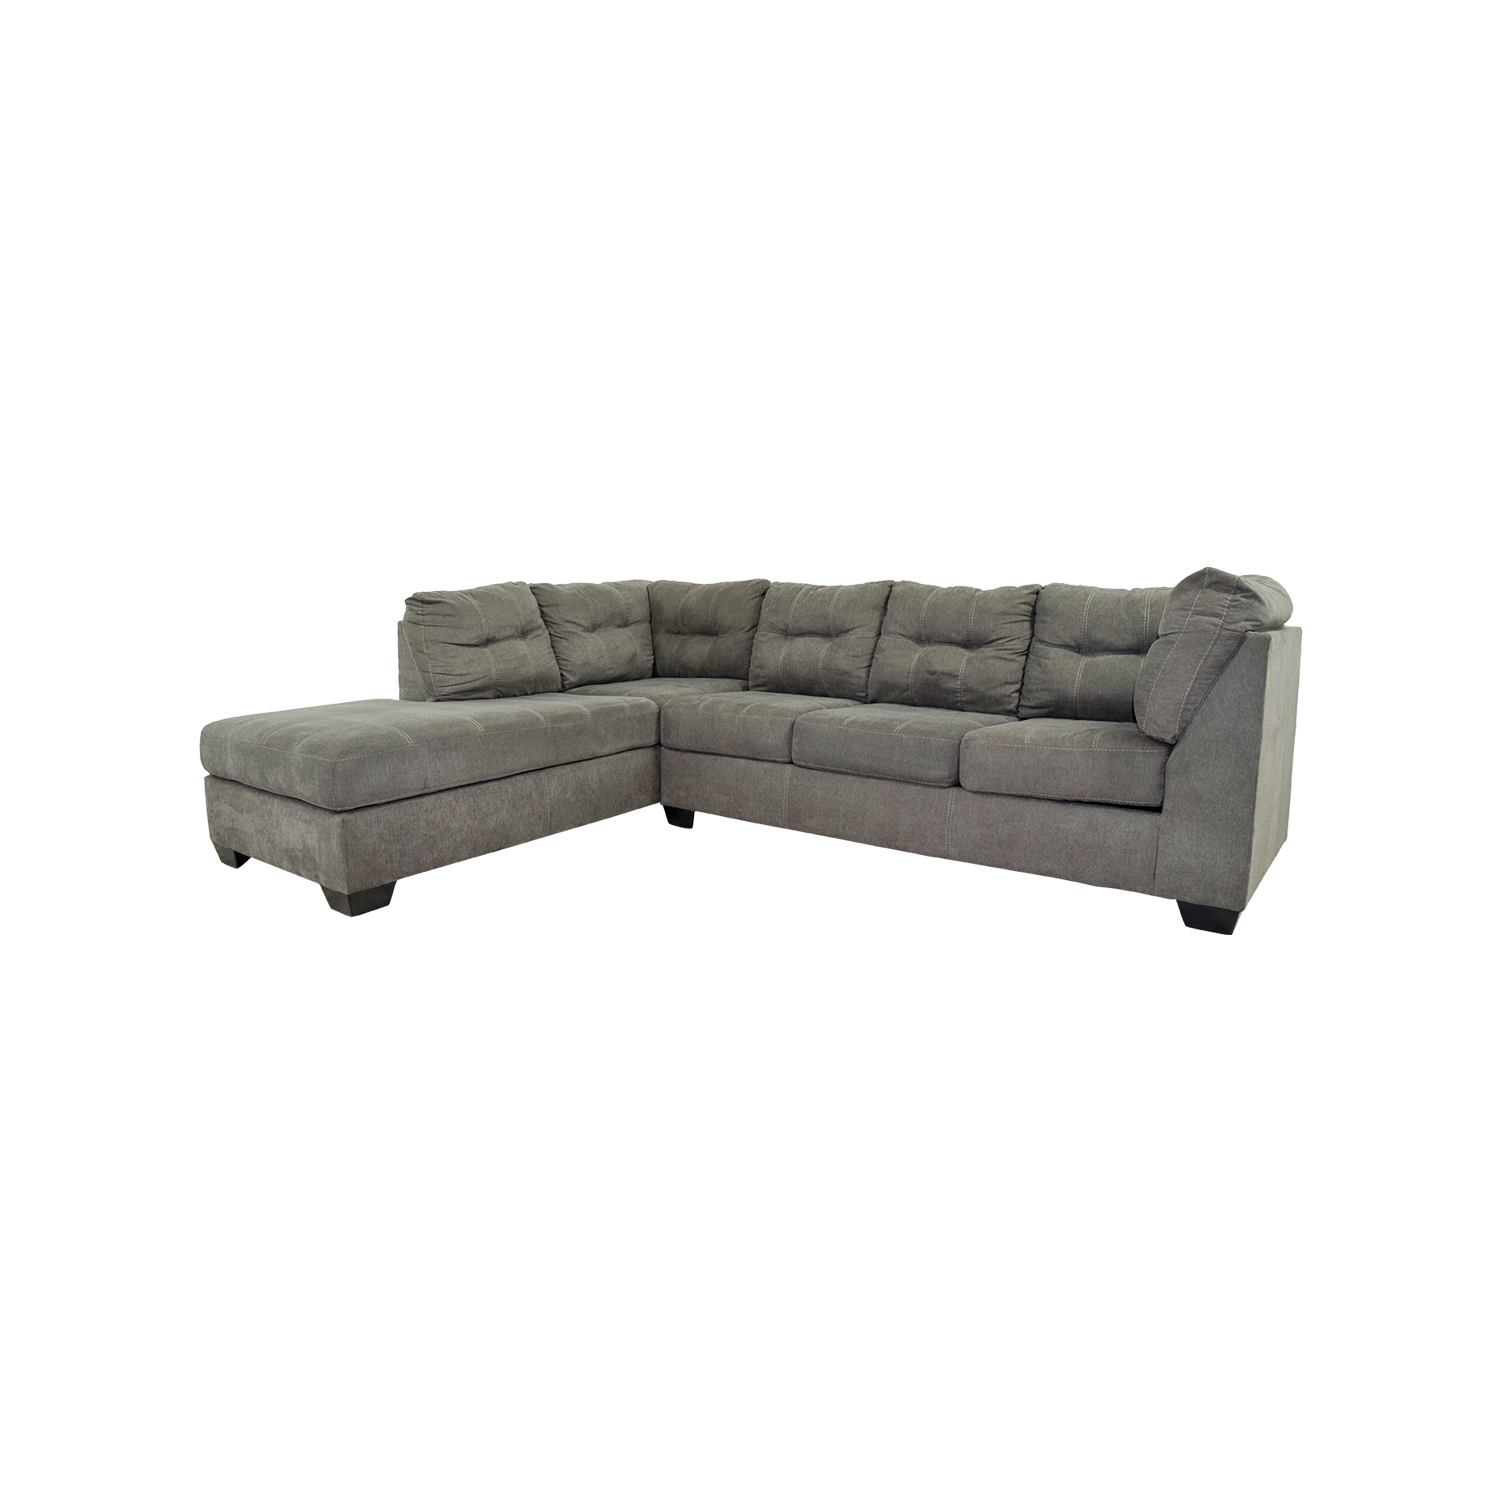 Mercury Row Mercury Row Cornett Charcoal Sectional second hand